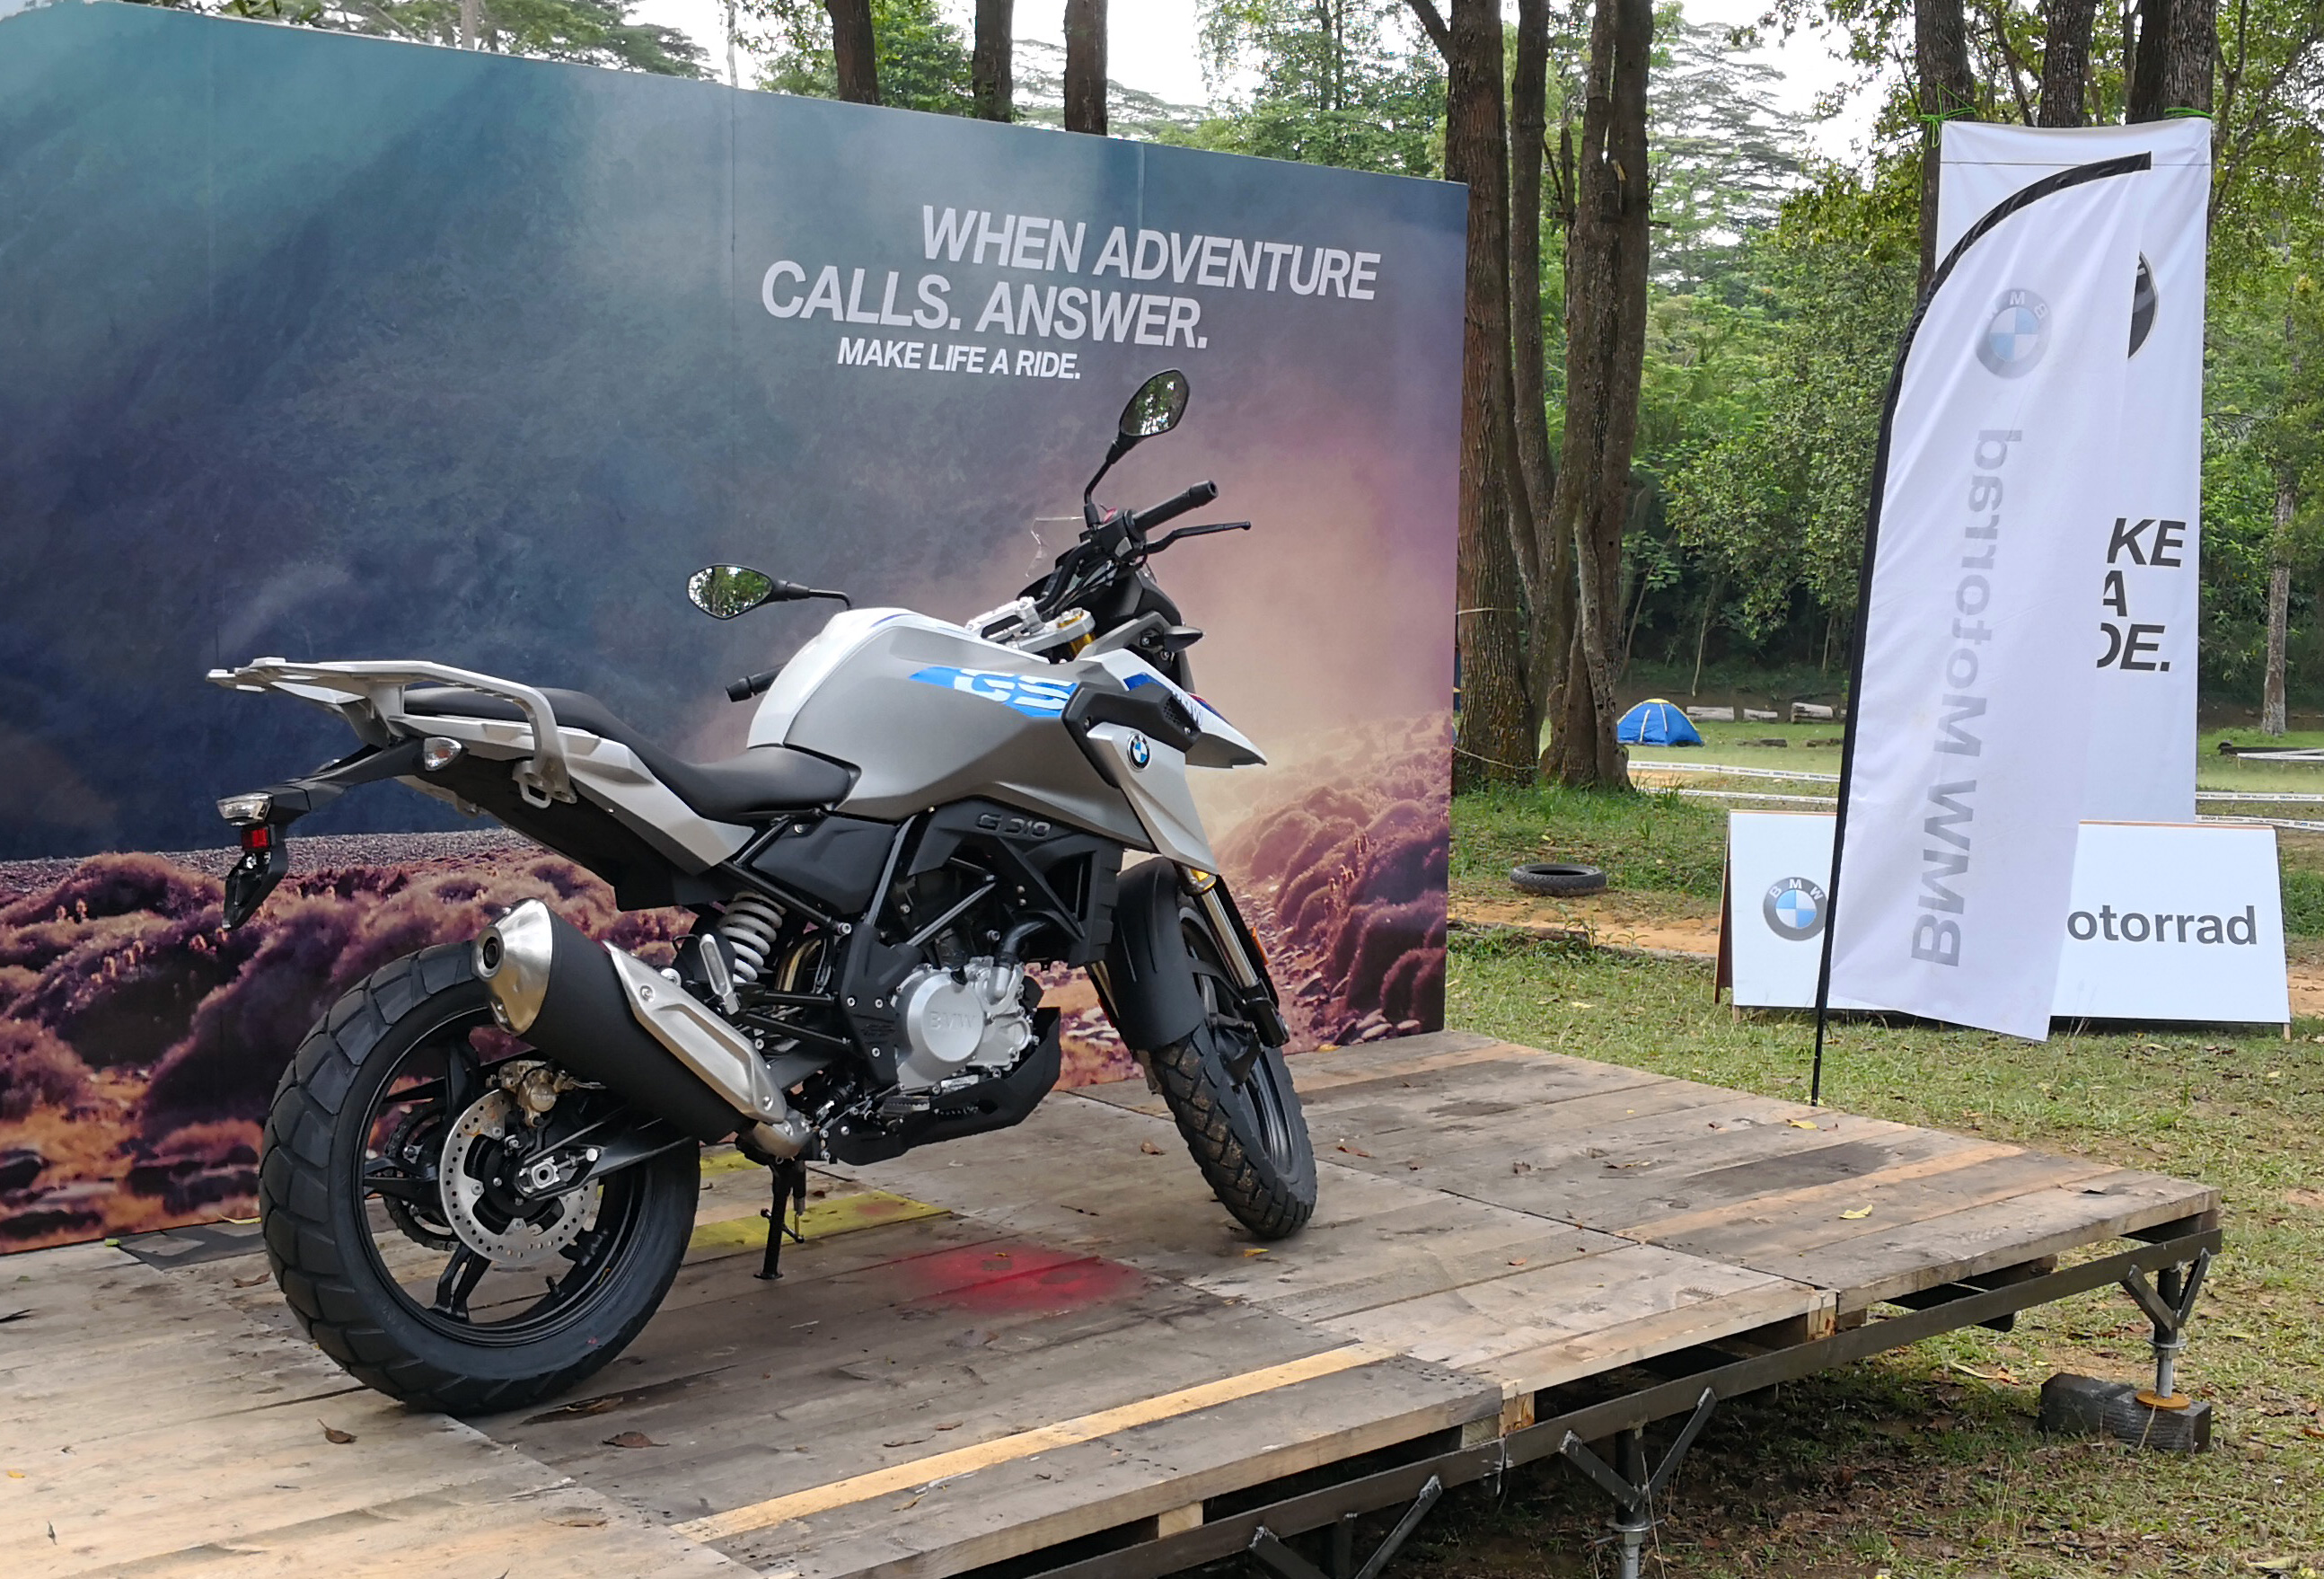 New BMW G310GS in Cosmic Black